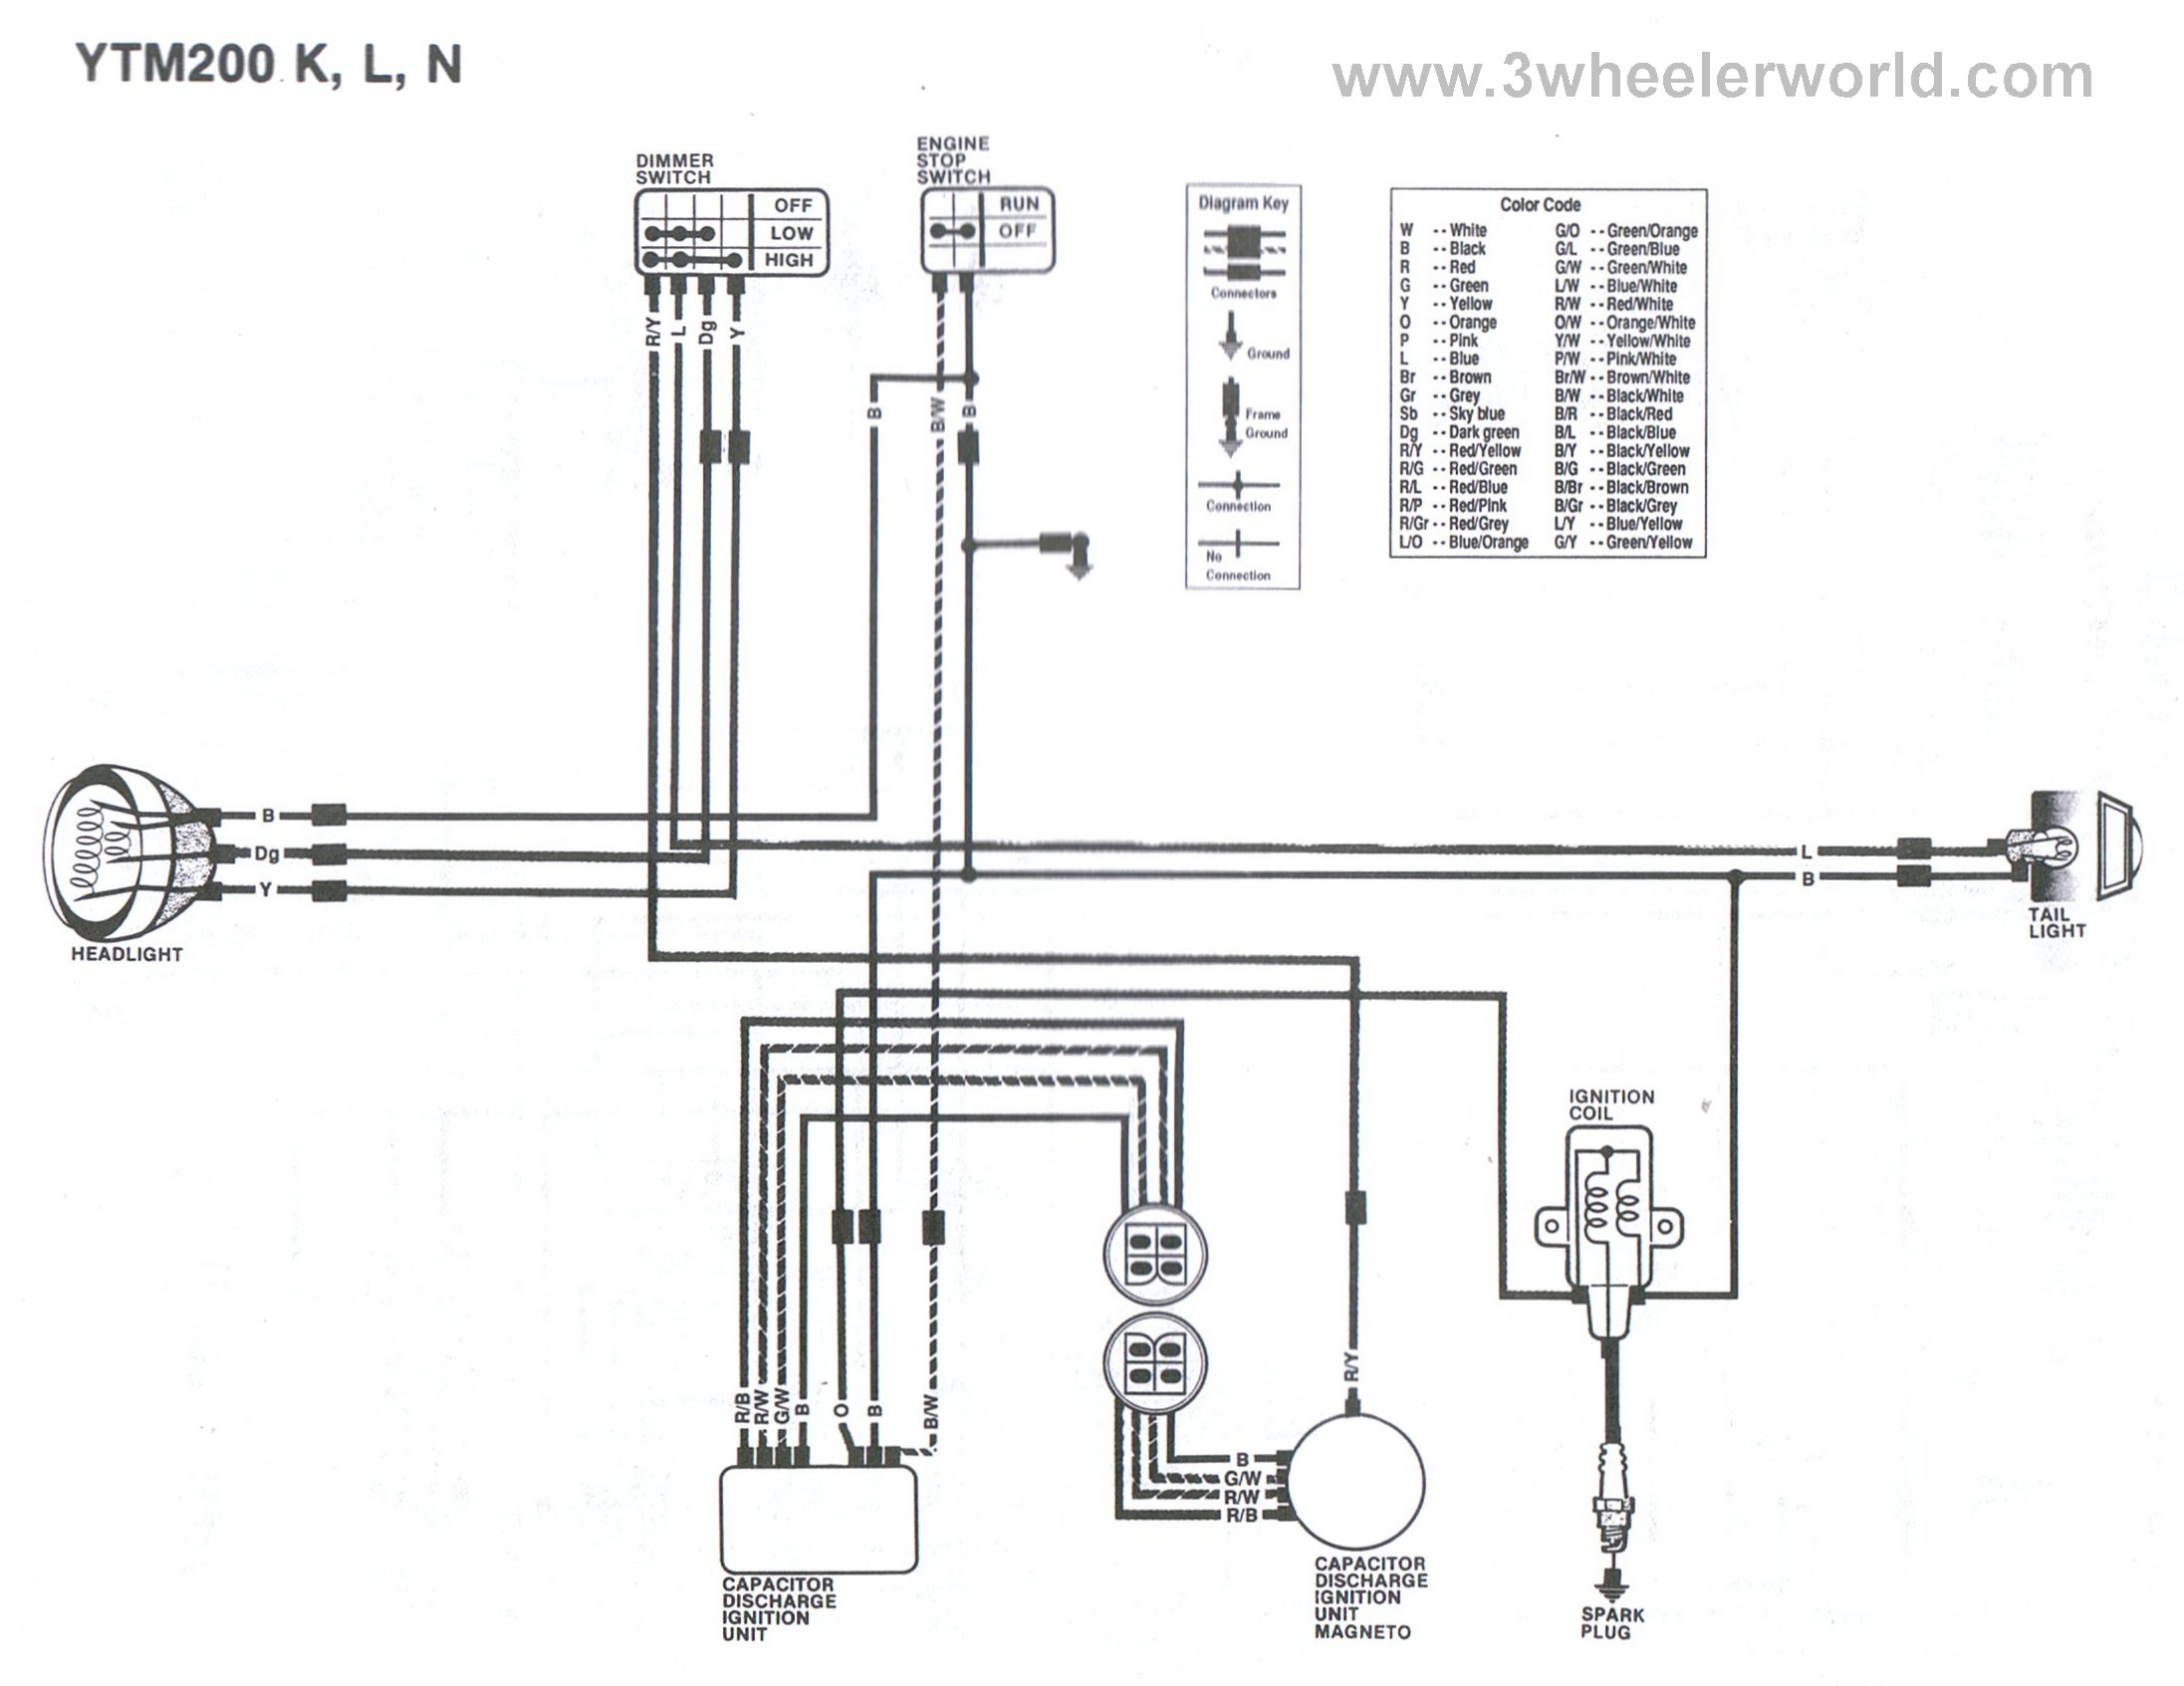 YTM200KLN 3 wheeler world tech help yamaha wiring diagrams 1986 yamaha moto 4 200 wiring schematic at alyssarenee.co